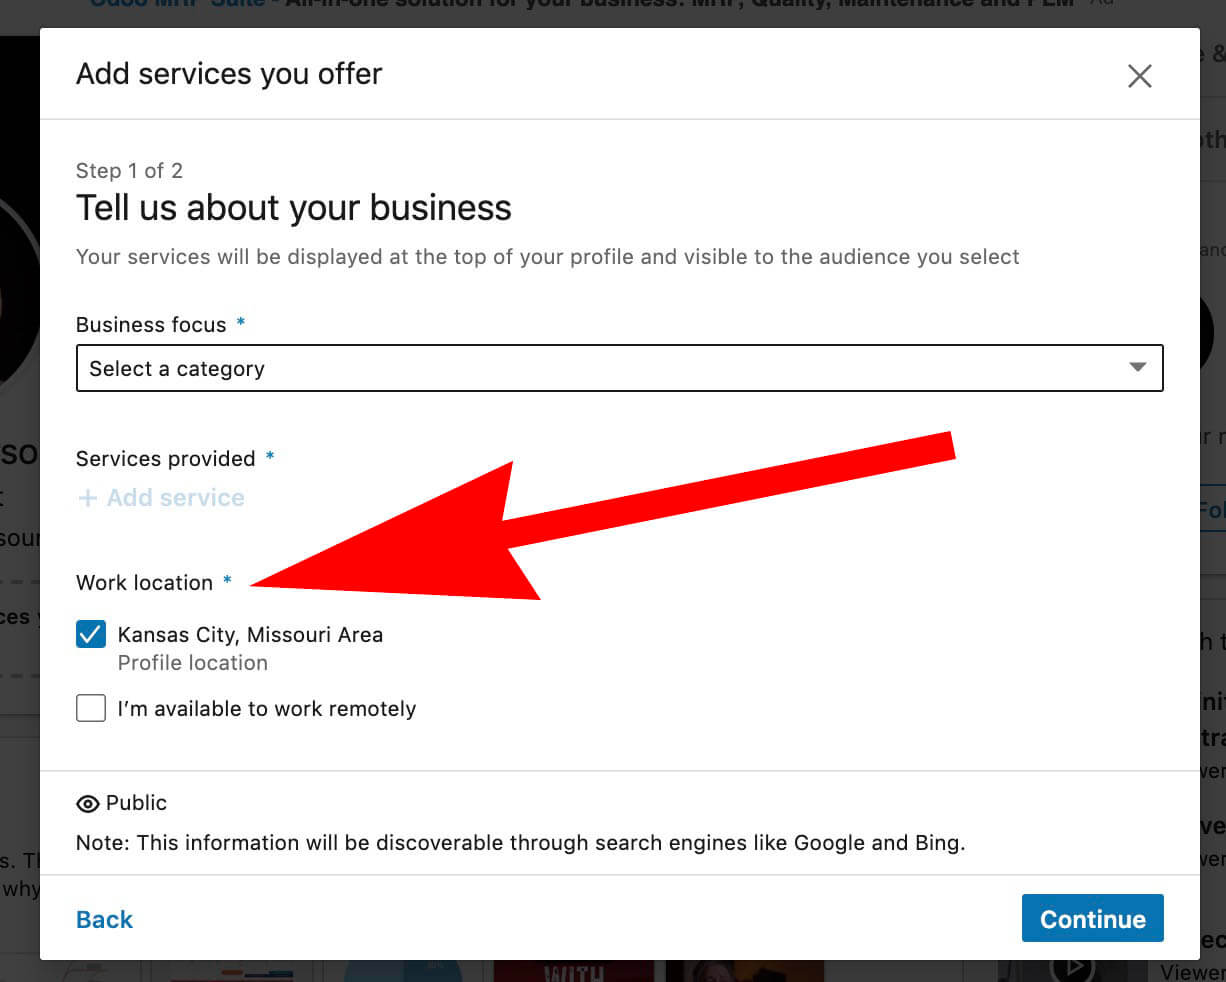 Linkedin showcase services - Add Business Services to your LInkedin Profile - Tell us about your business